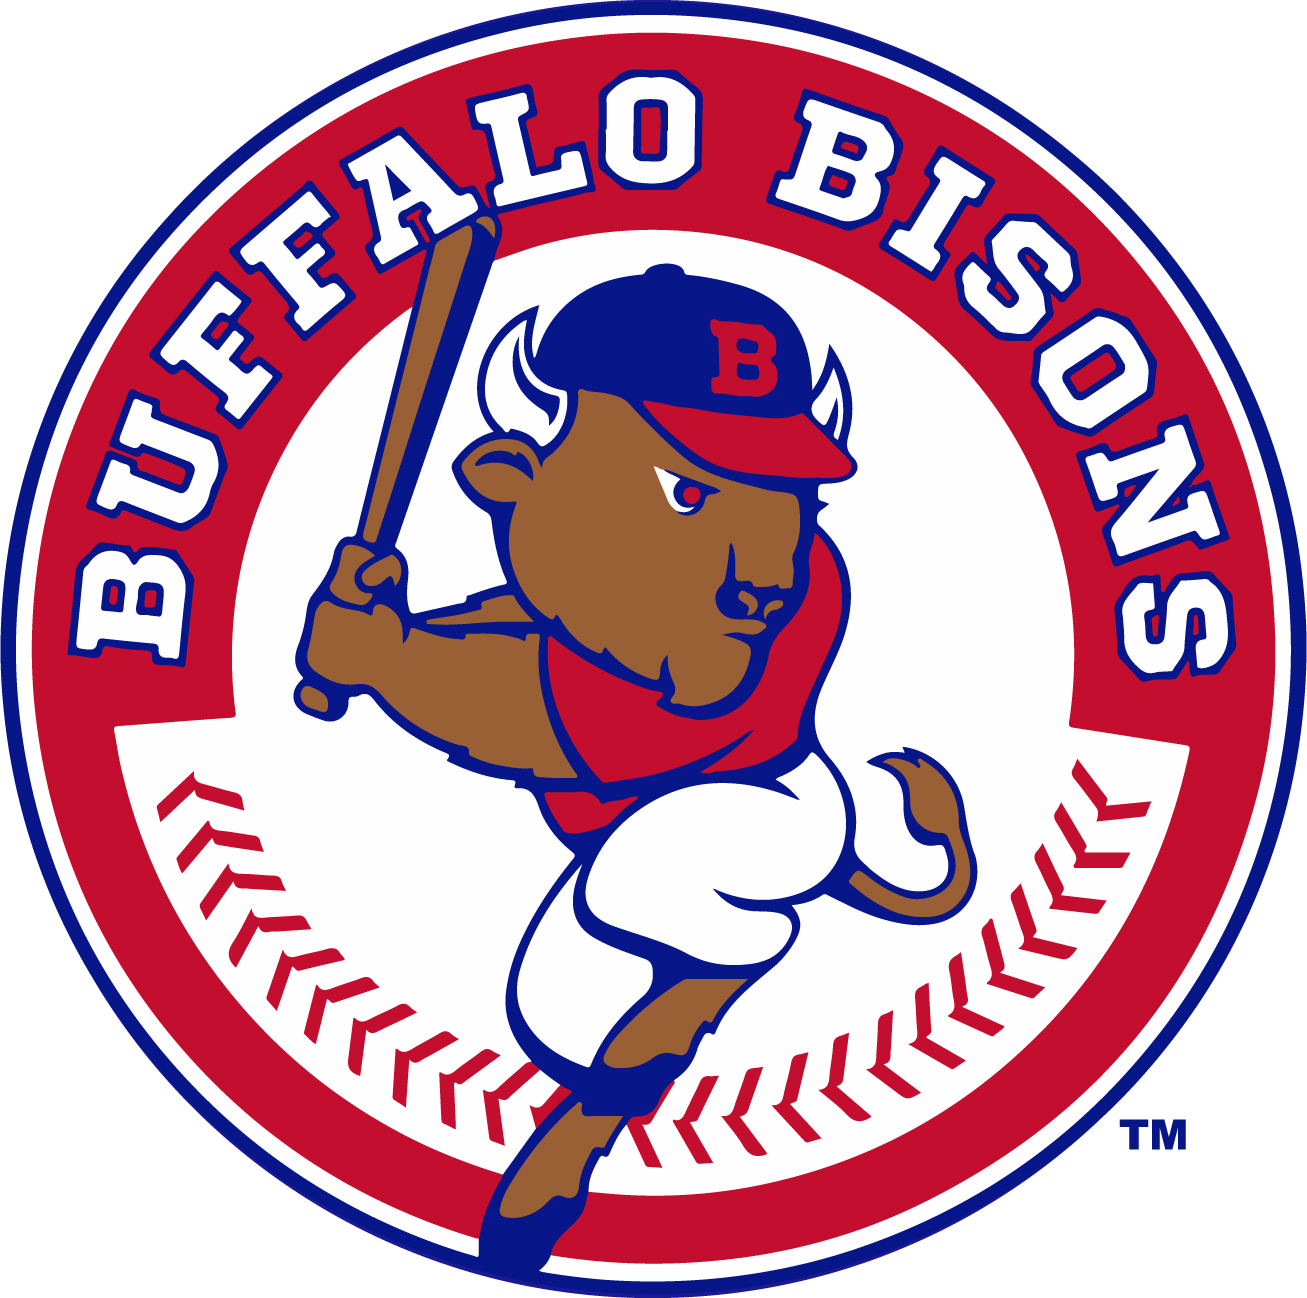 Buffalo-Bisons-Logo_1523495814609.jpg